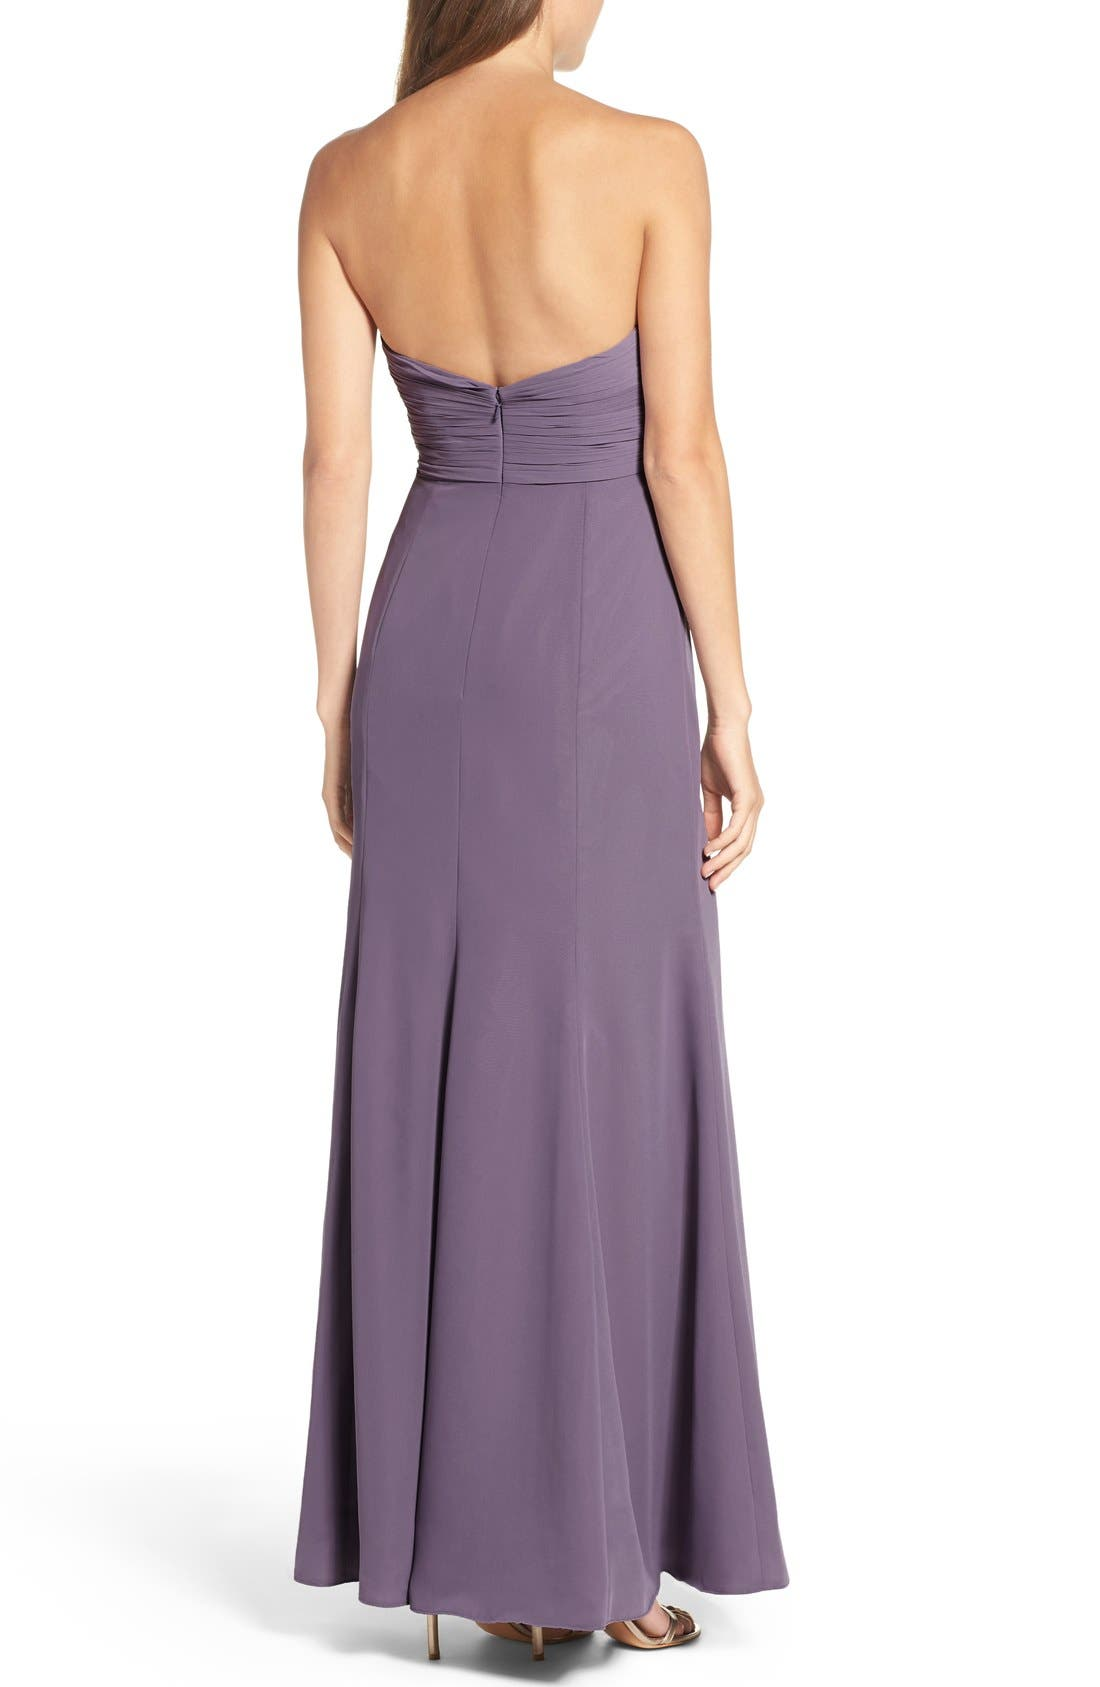 Fit flare bridesmaid wedding party dresses nordstrom ombrellifo Images